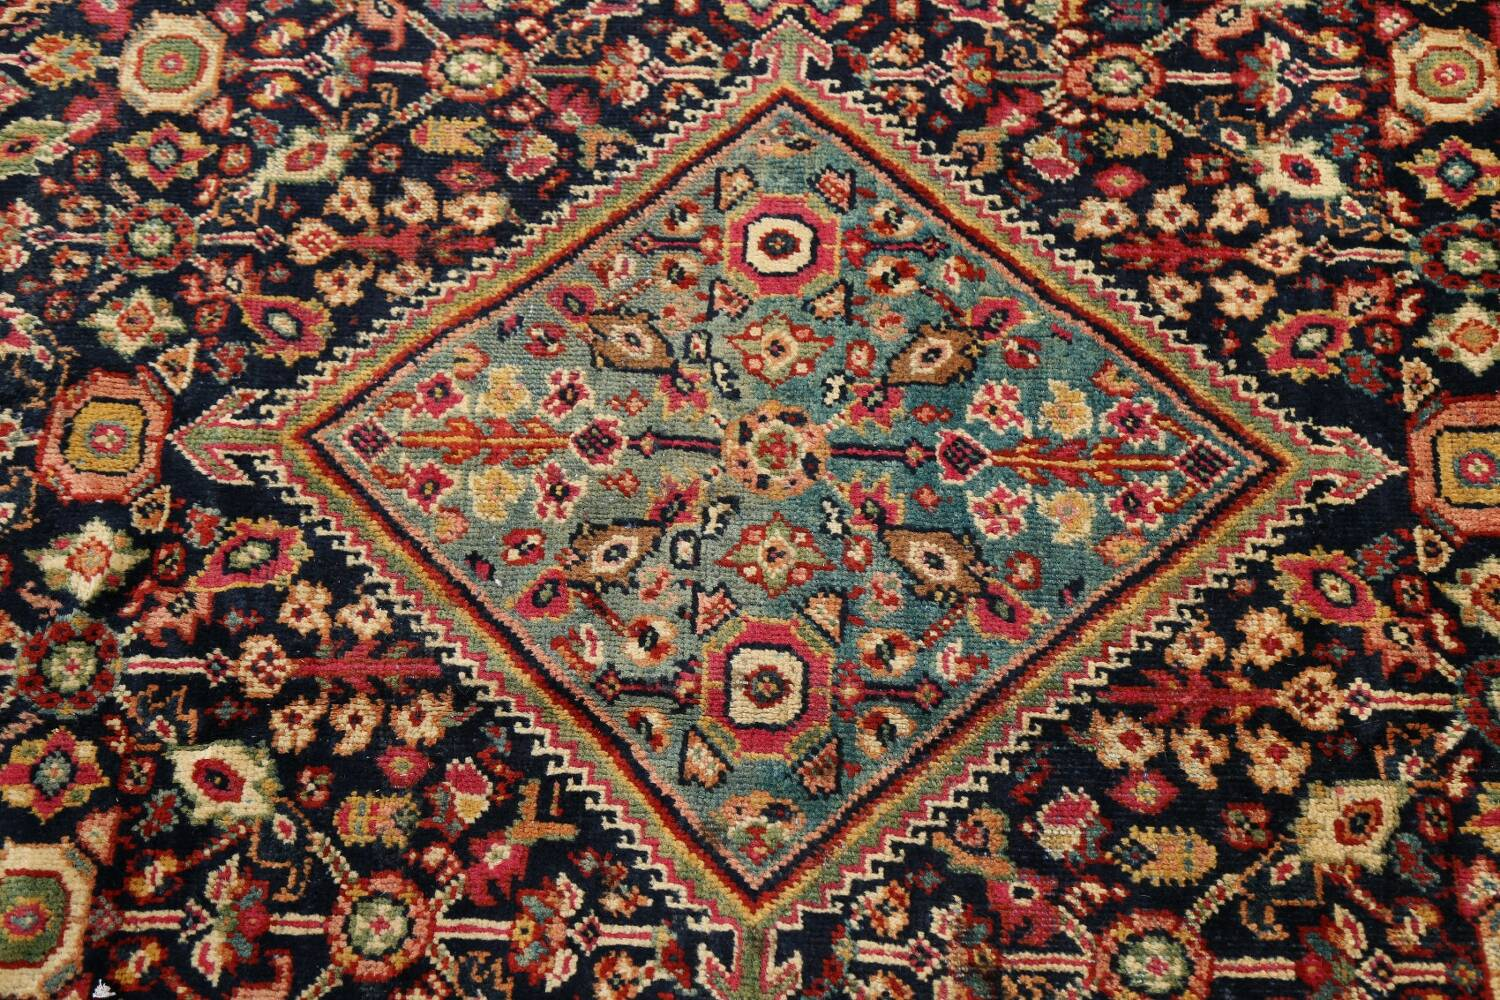 100% Vegetable Dye Antique Sultanabad Persian Area Rug 4x6 image 10